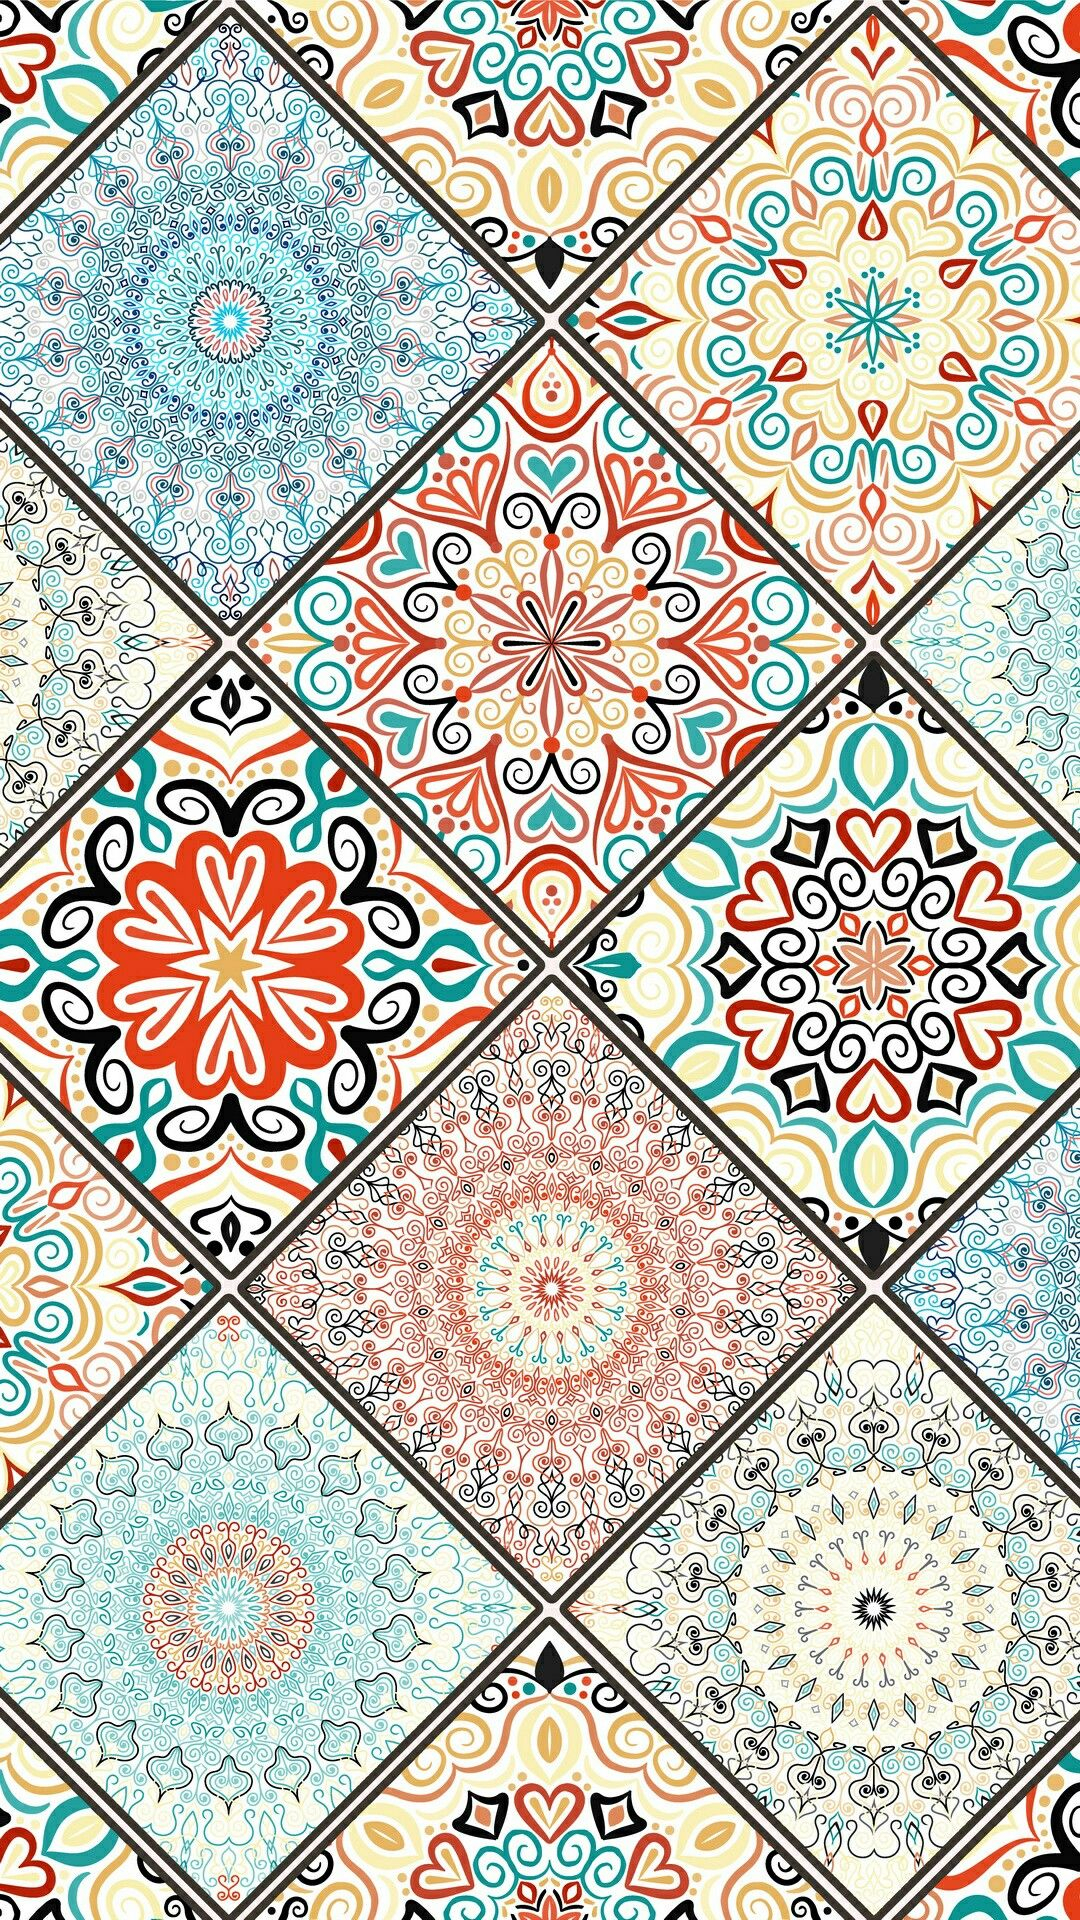 boho #bohemian #mandalas #mandala #design | boho wallpapers in 2019